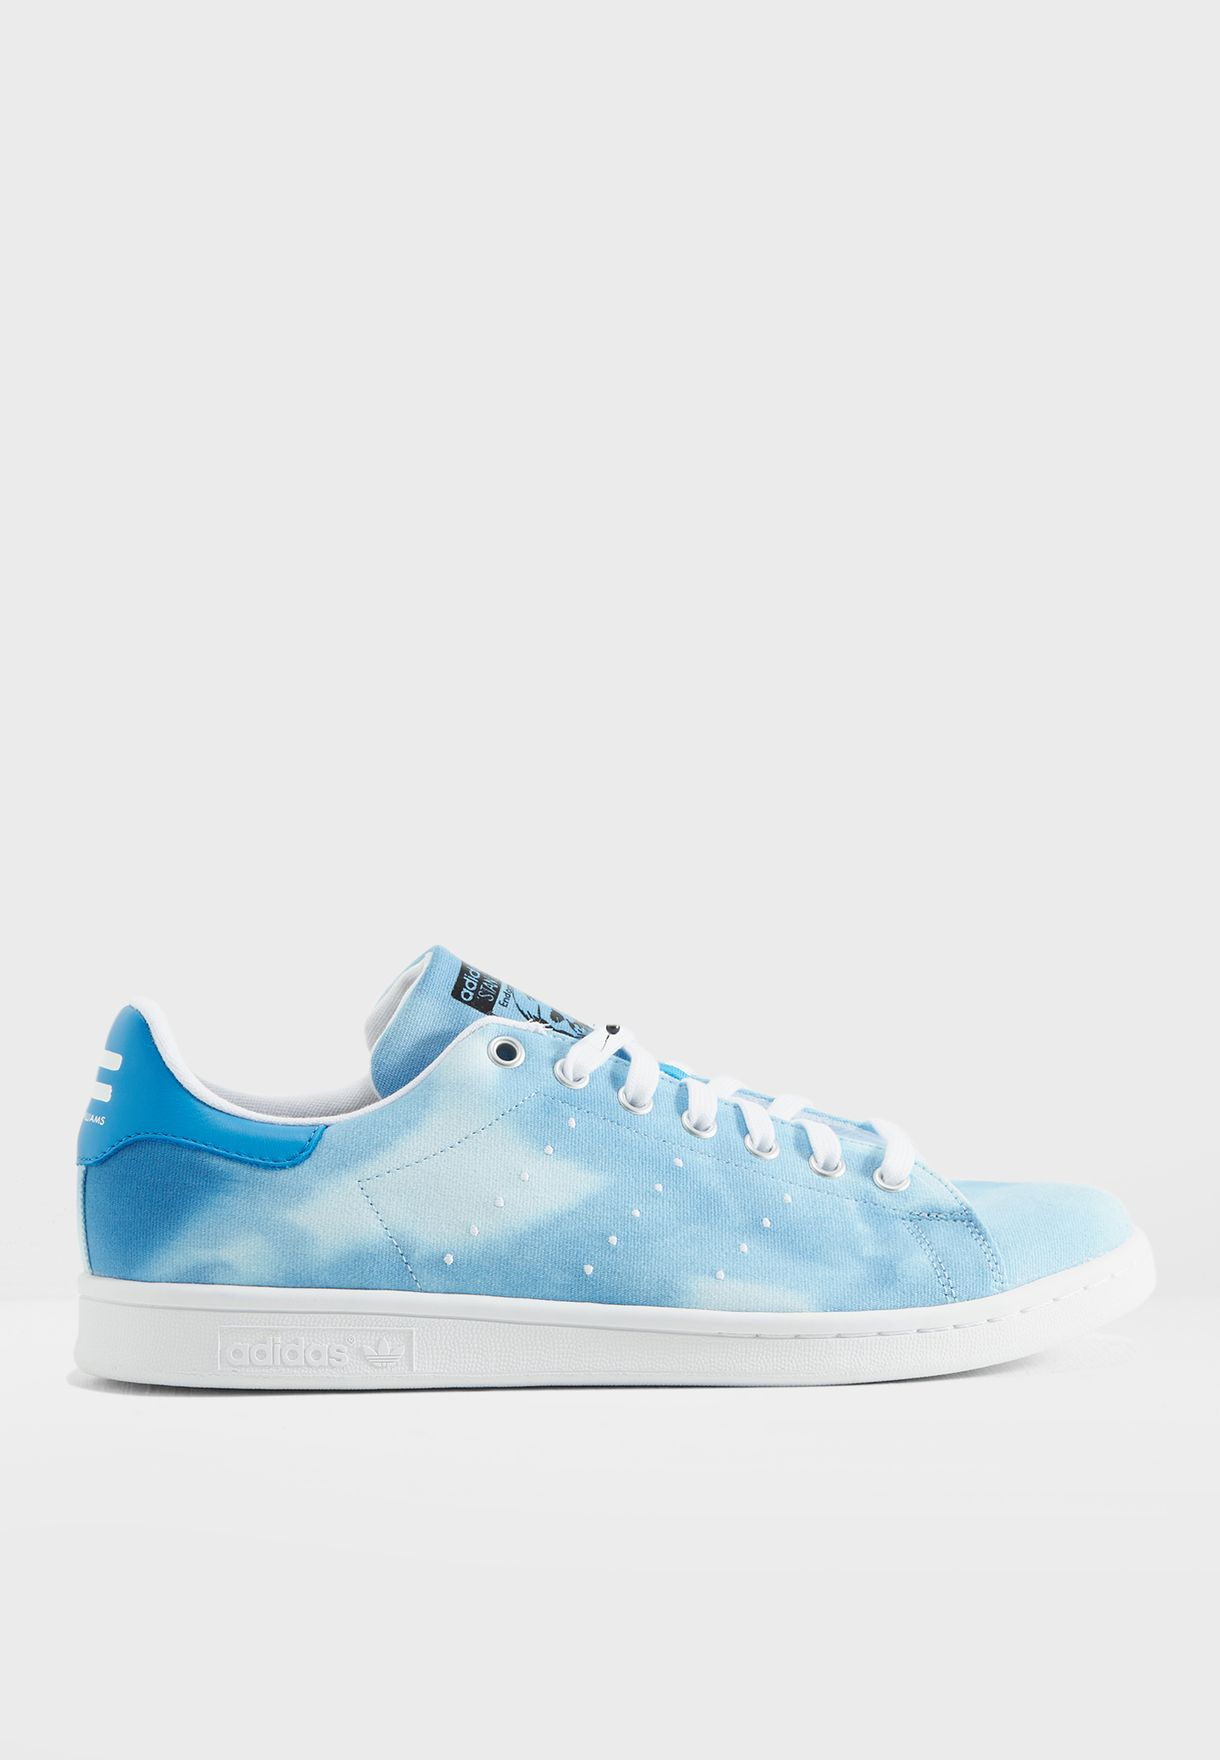 ed9960aaa21d1 Shop adidas Originals blue Pharrell Williams Hu Holi Stan Smith AC7045 for  Men in UAE - AD478SH99IDS